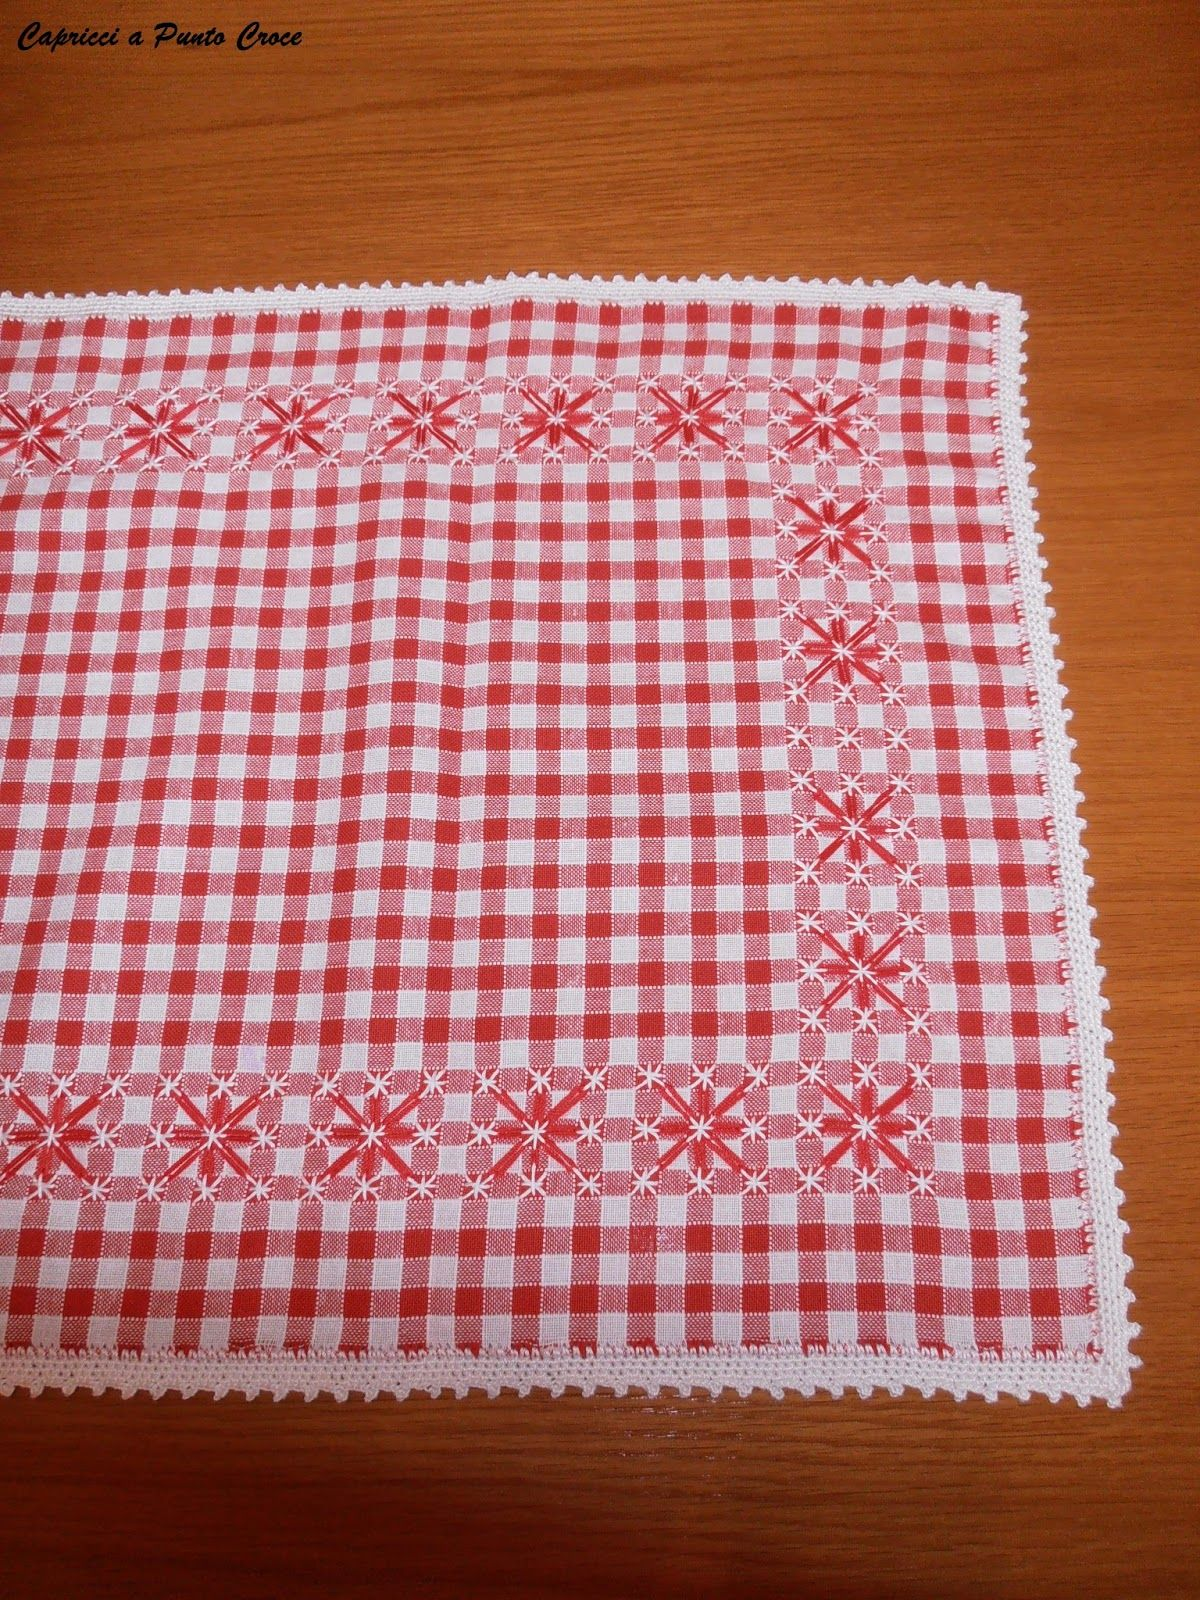 broderie suisse | Capricci a Punto Croce: BRODERIE SUISSE